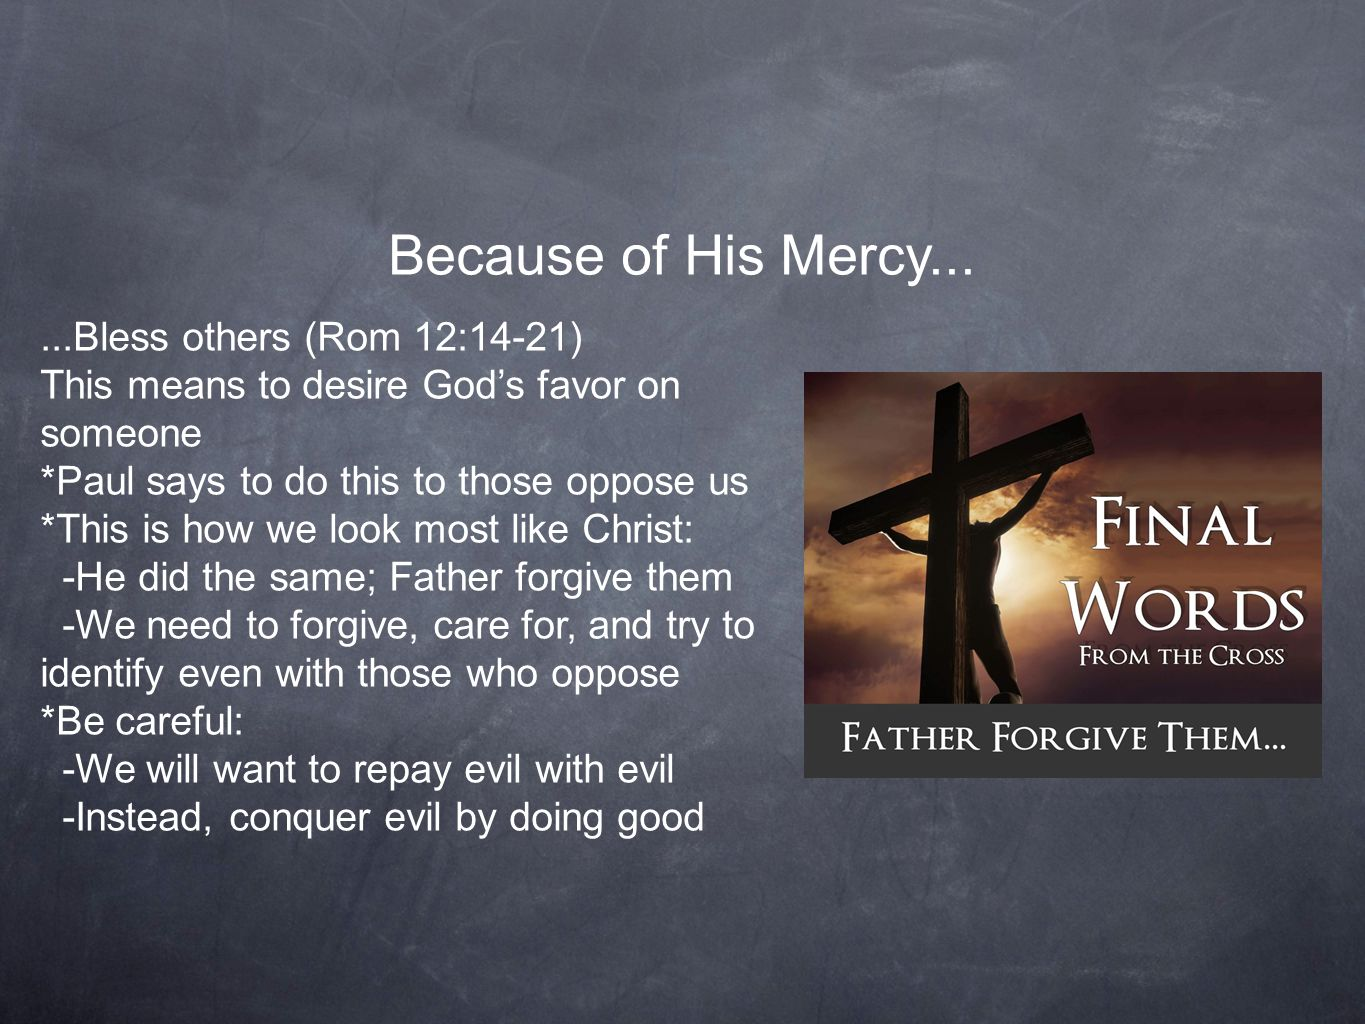 Because of His Mercy......Bless others (Rom 12:14-21) This means to desire God's favor on someone *Paul says to do this to those oppose us *This is how we look most like Christ: -He did the same; Father forgive them -We need to forgive, care for, and try to identify even with those who oppose *Be careful: -We will want to repay evil with evil -Instead, conquer evil by doing good